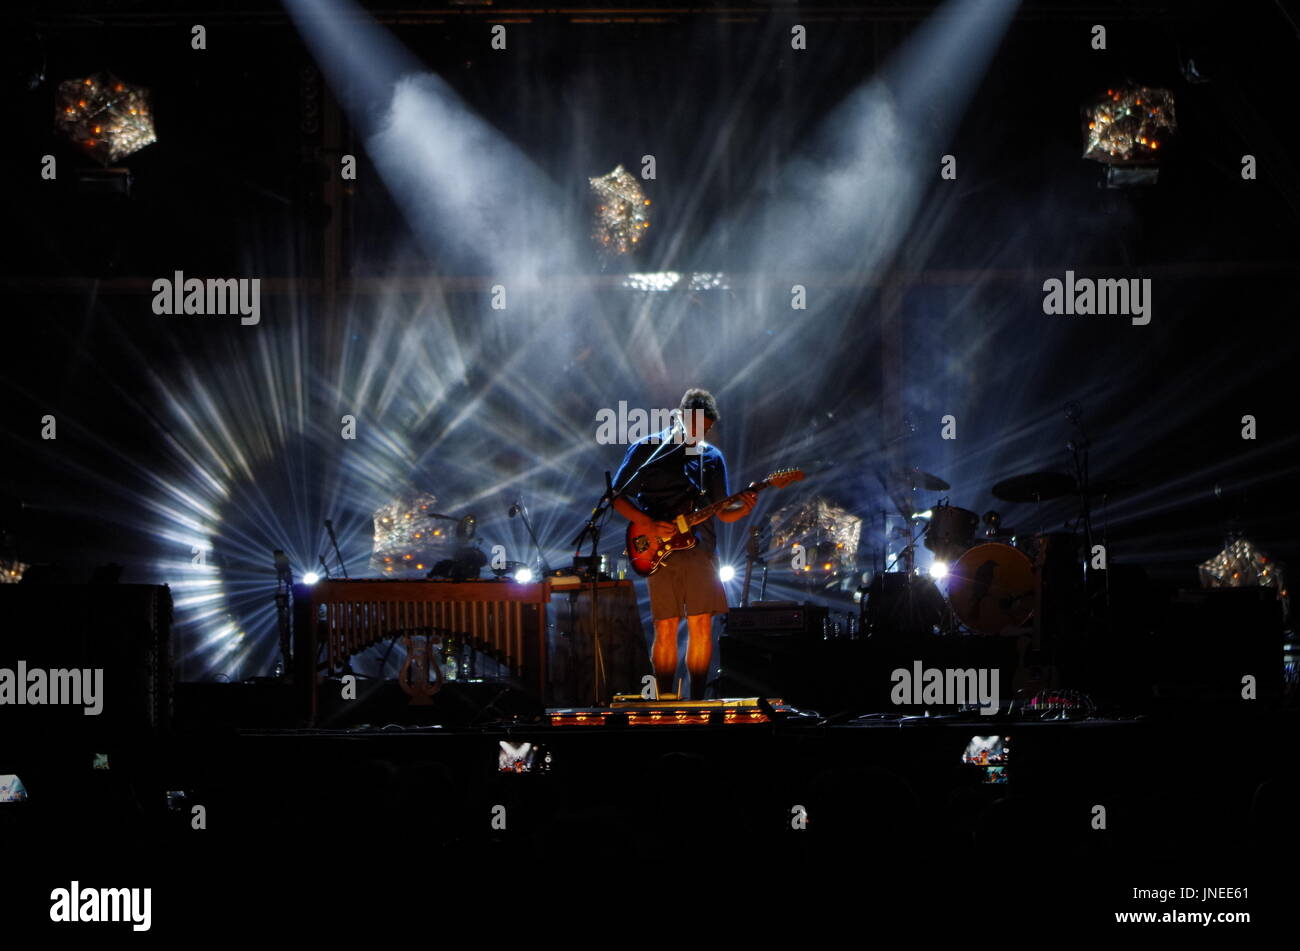 Algarve, Portugal. 29th July, 2017. Miguel Araujo concert at Festival Al-Buhera 2017 in Albufeira. 4th day day of the festival. Credit: Angelo DeVal/Alamy Live News - Stock Image